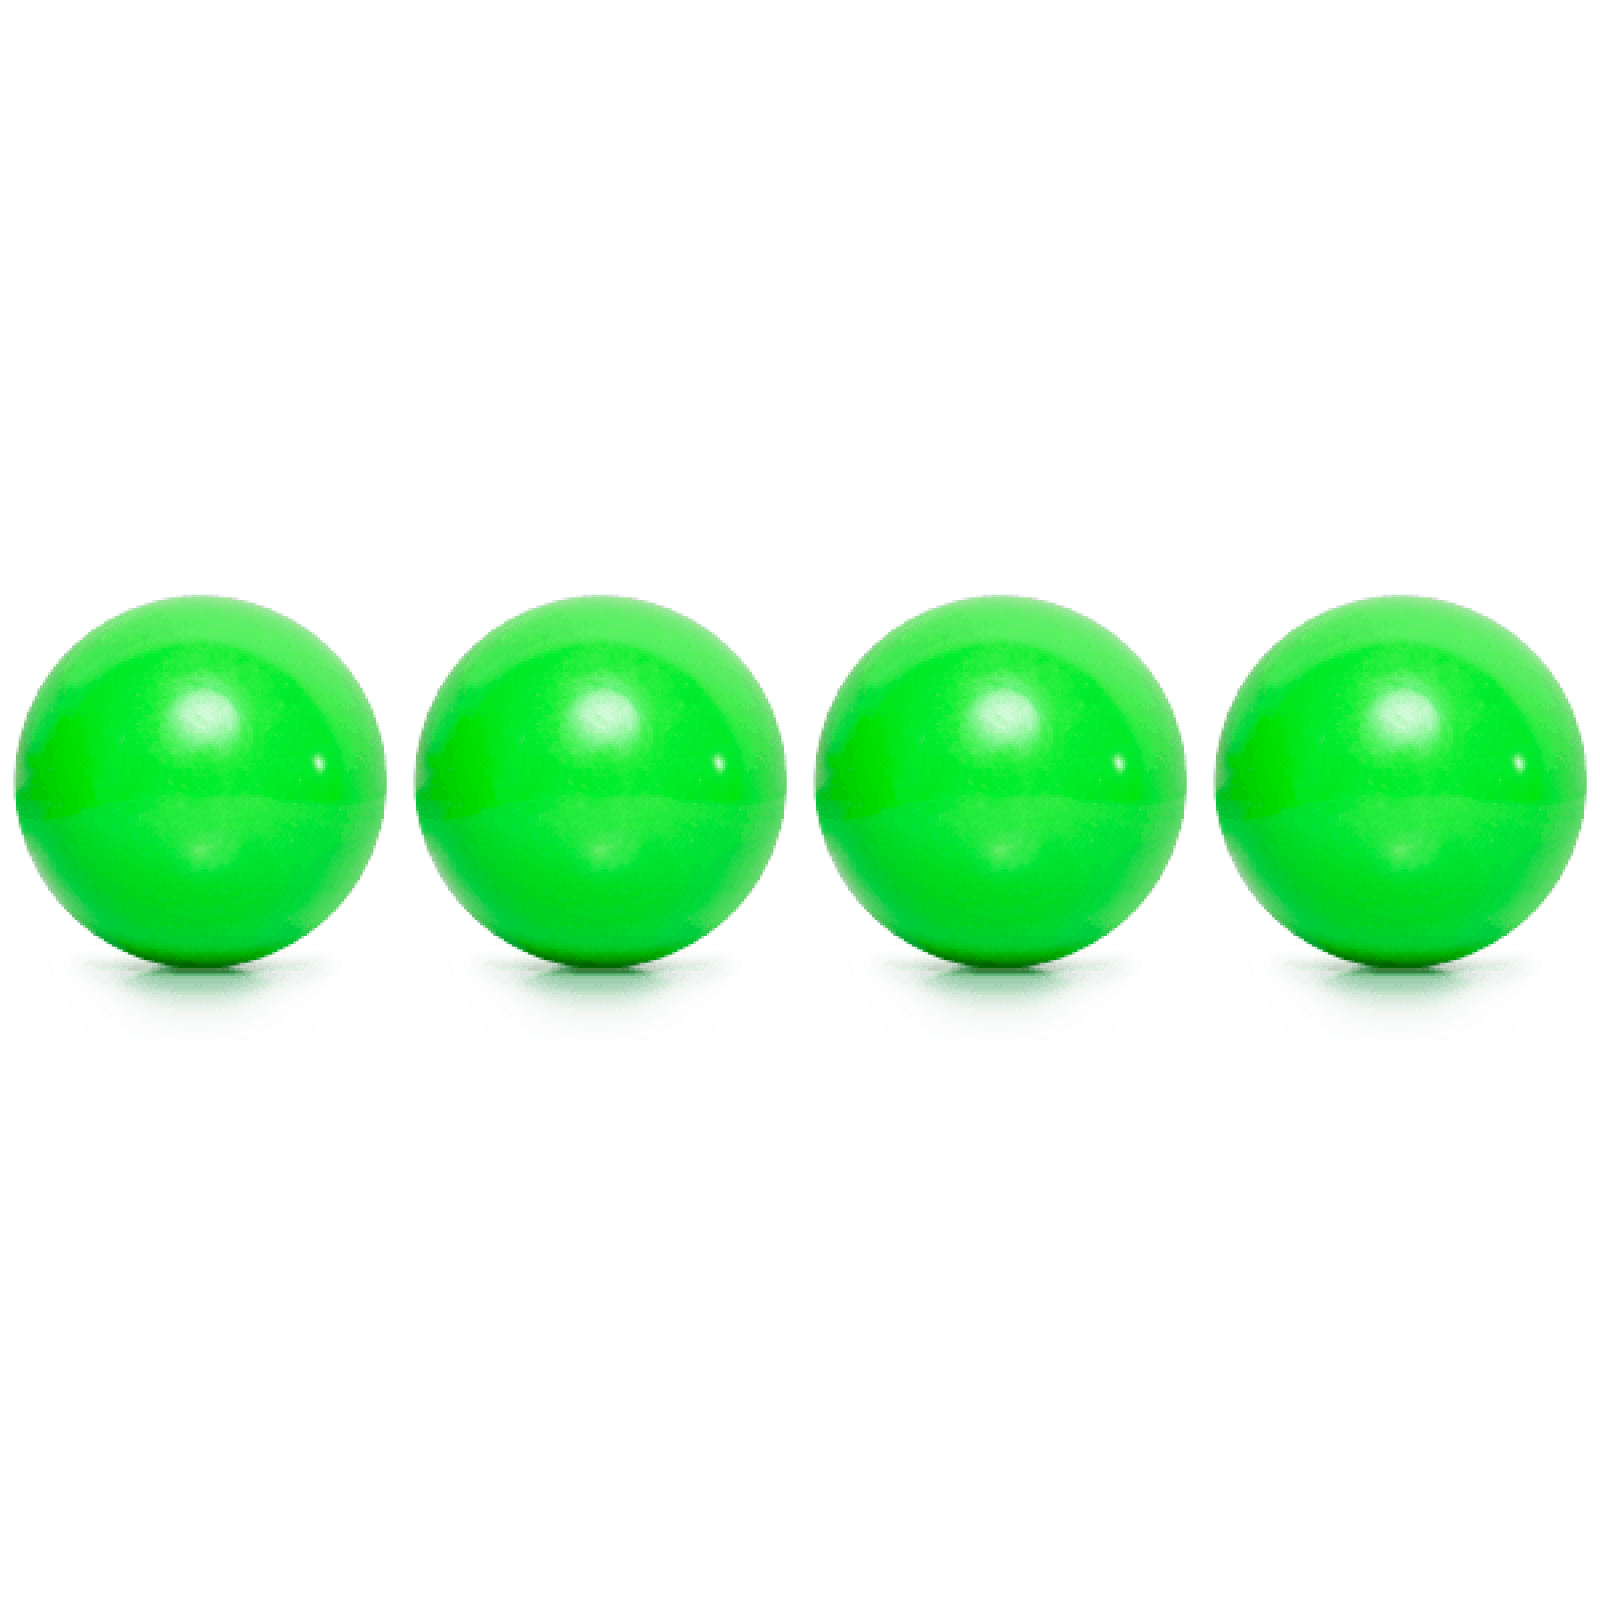 Small Health Balls for Soft Tissue Release